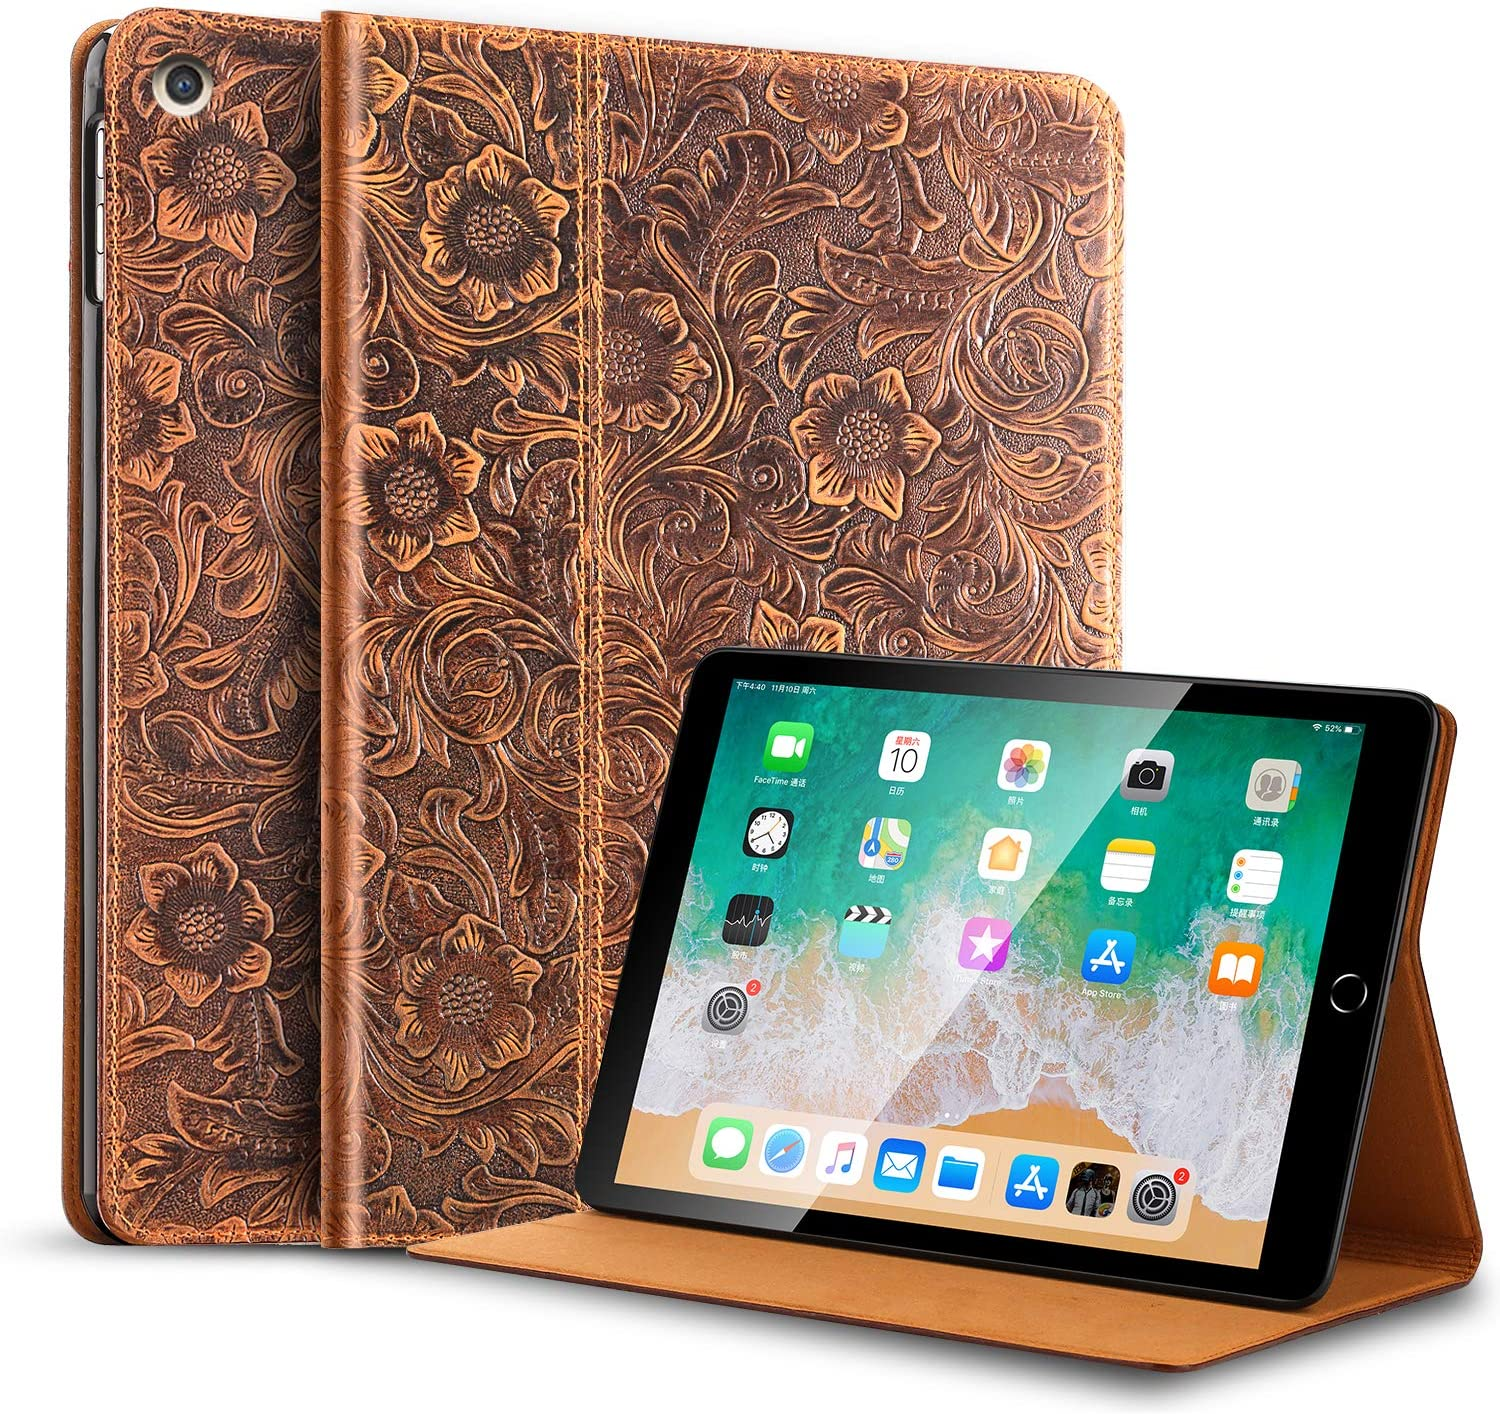 Gexmil iPad 10.2 inch 2019 Case, Cowhide Folio Cover for New iPad 7th Gen Genuine Leather case